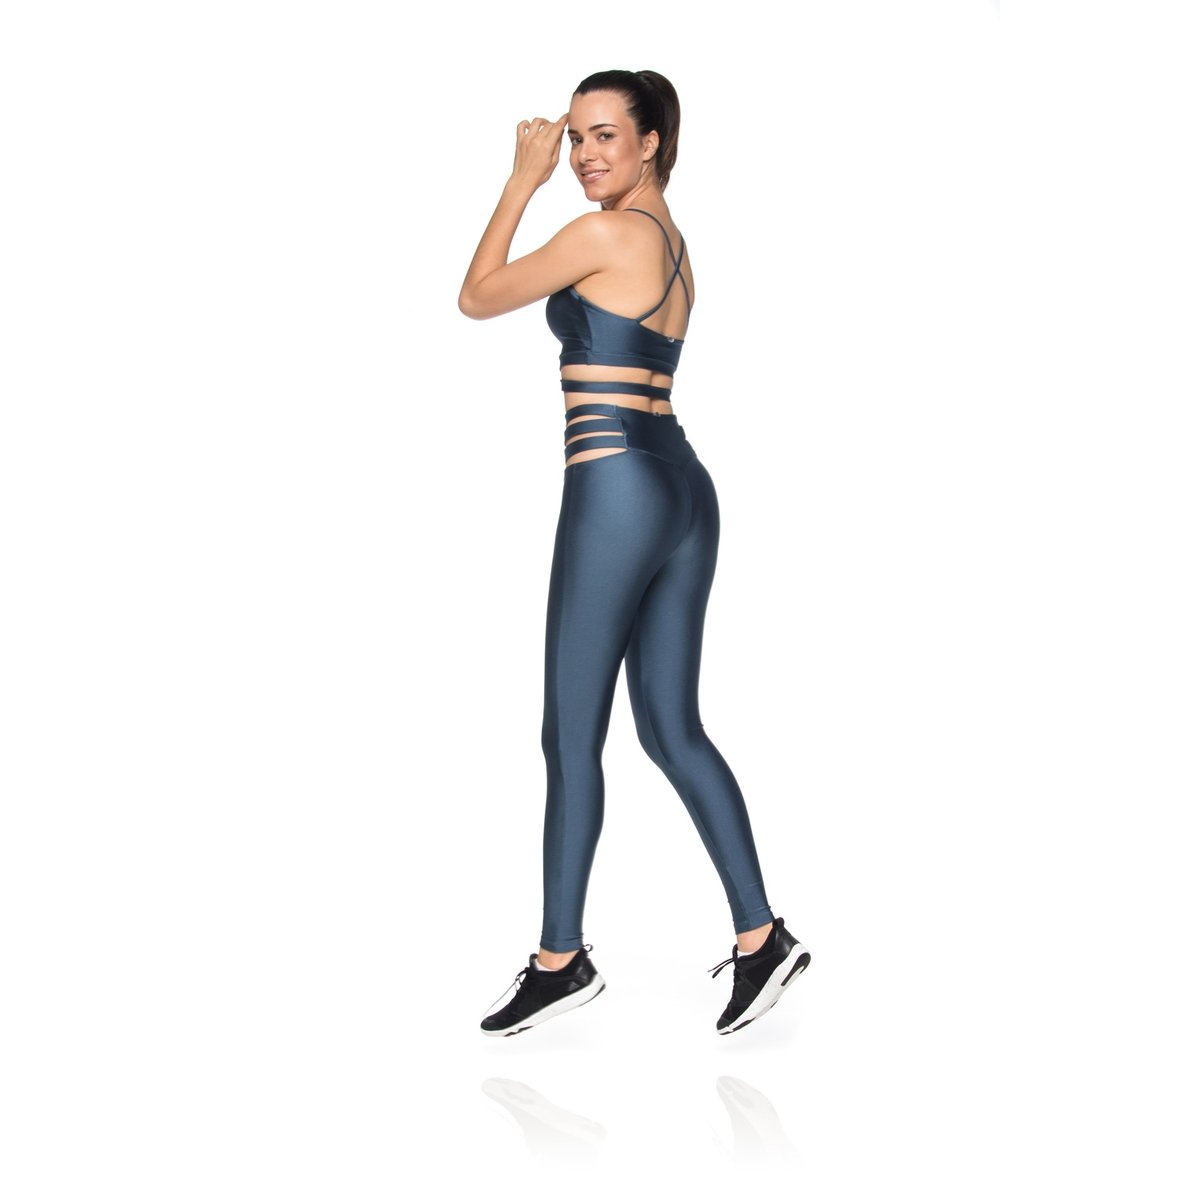 Azul Top Petróleo Fitness Top Skin Strip Fitness wxXxFq4fR